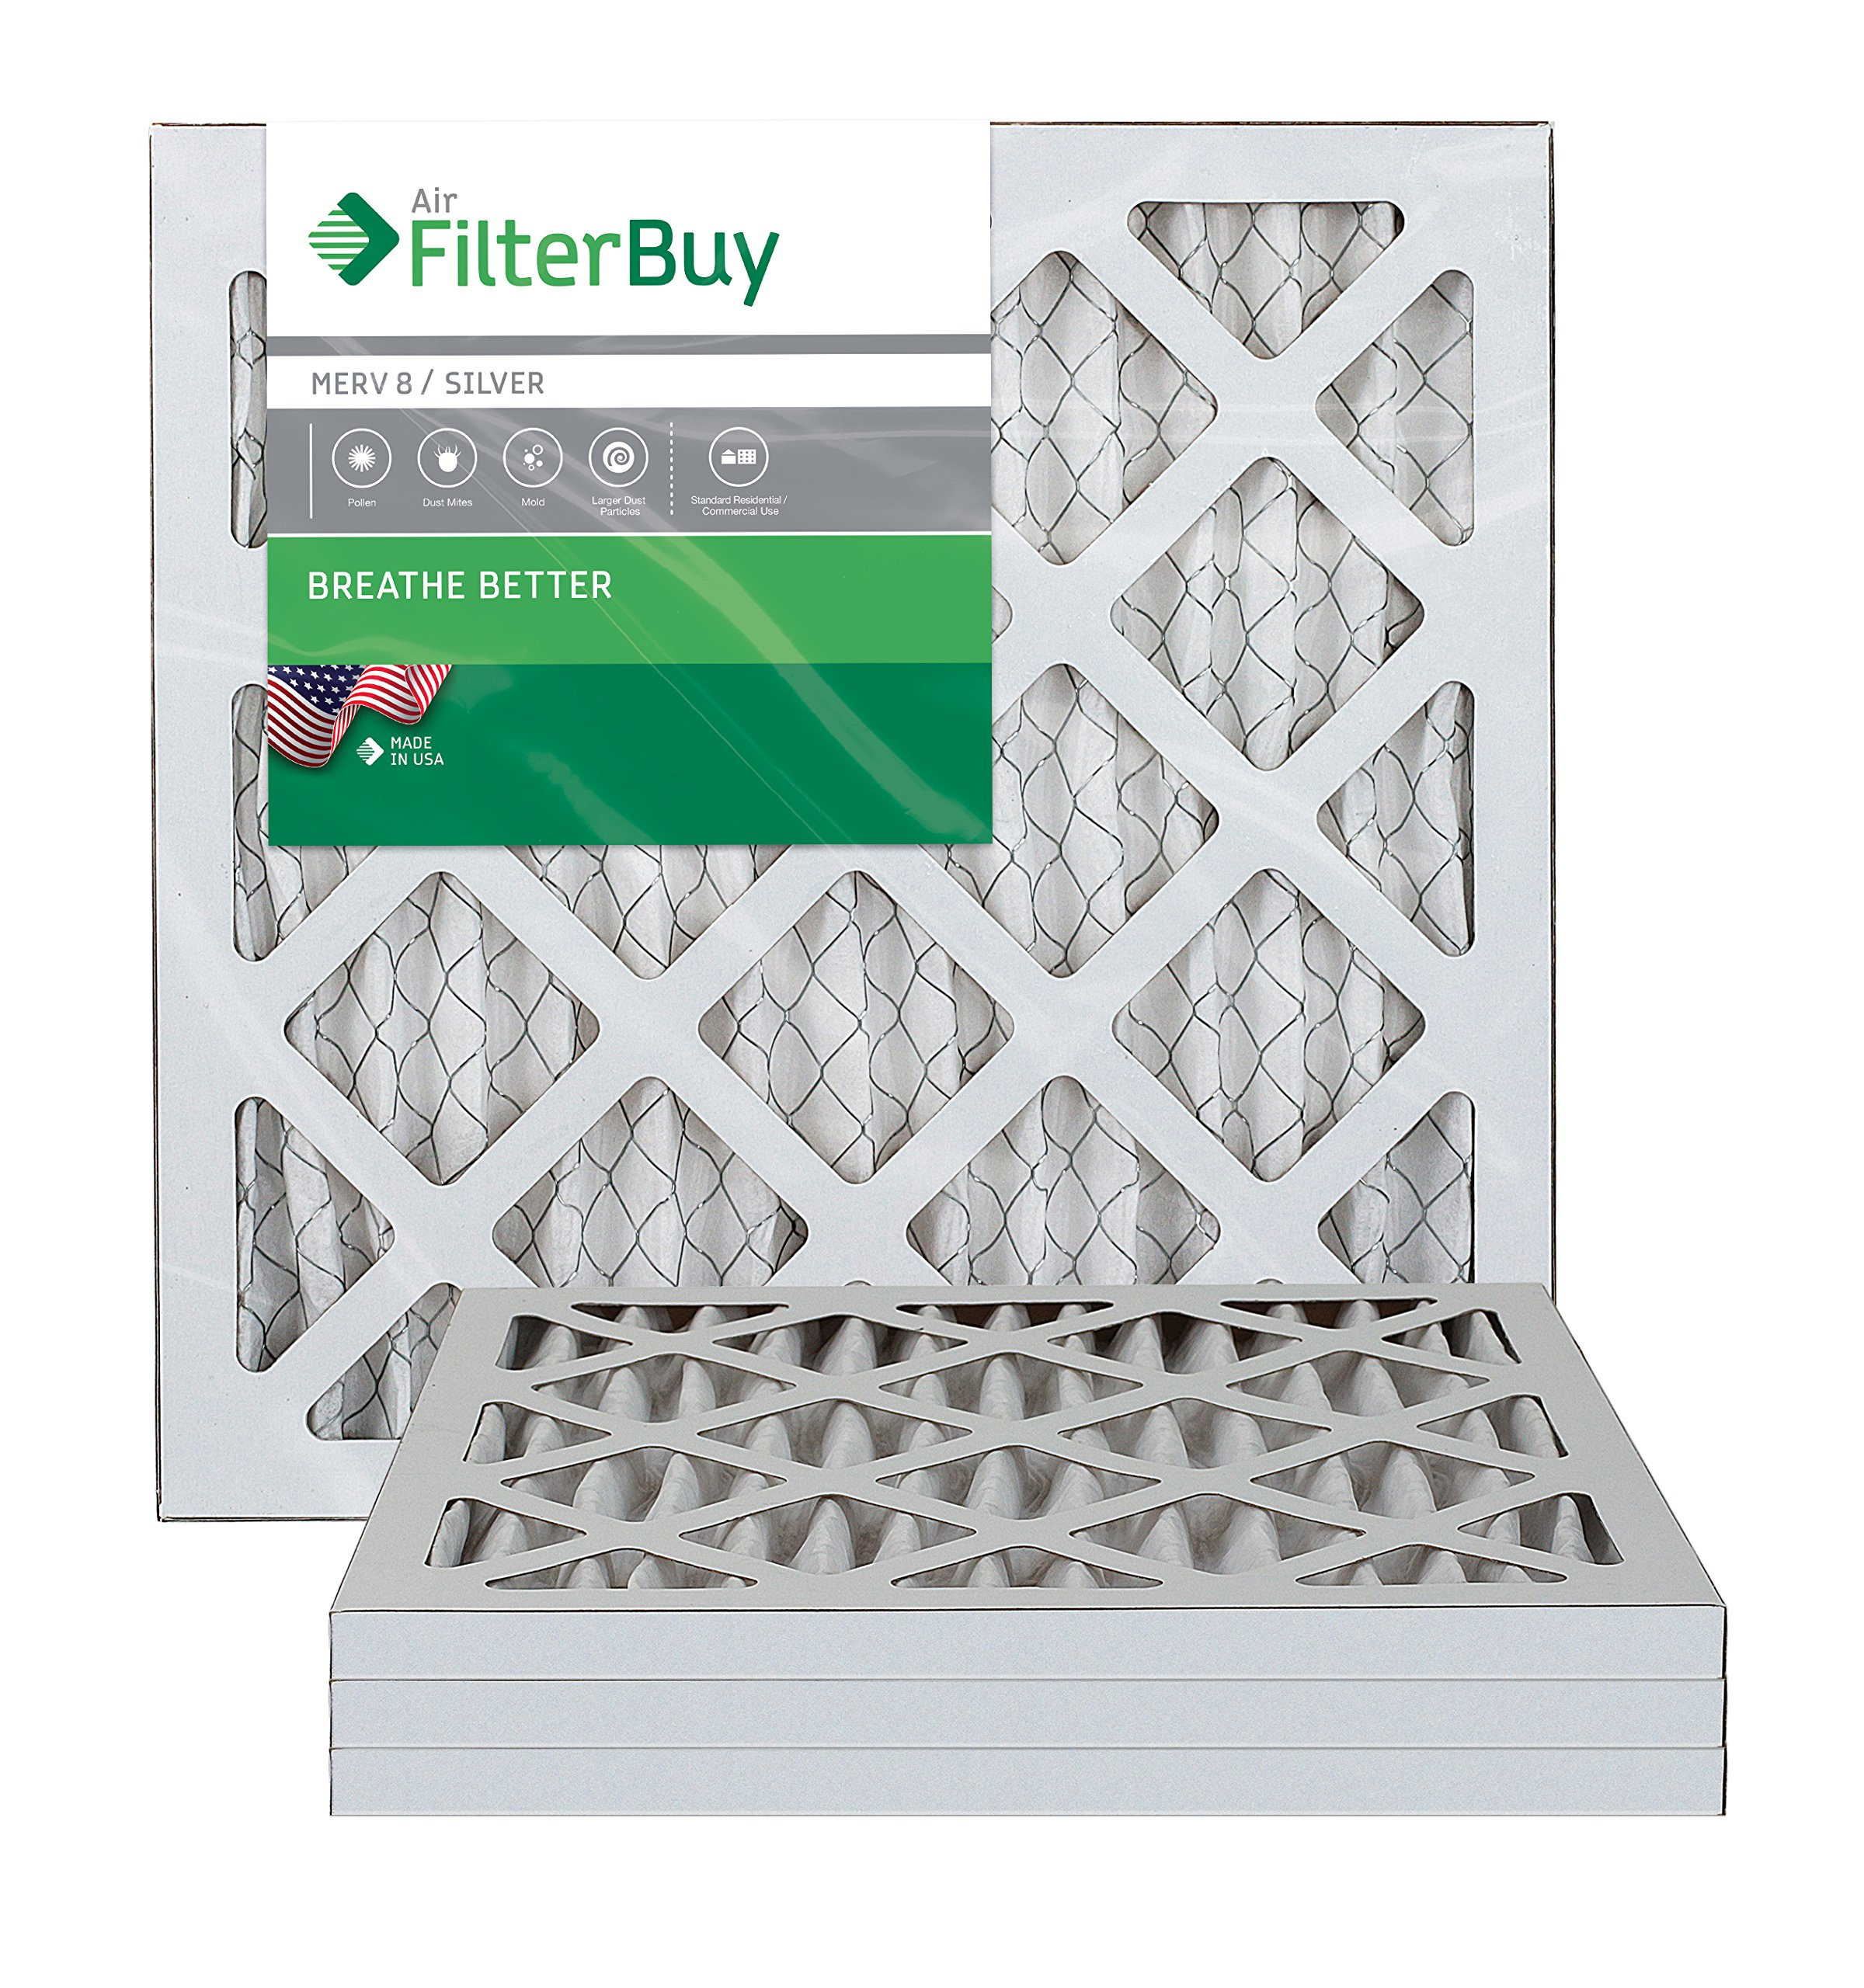 FilterBuy 6x12x1 MERV 8 Pleated AC Furnace Air Filter, (Pack of 4 Filters), 6x12x1  Silver